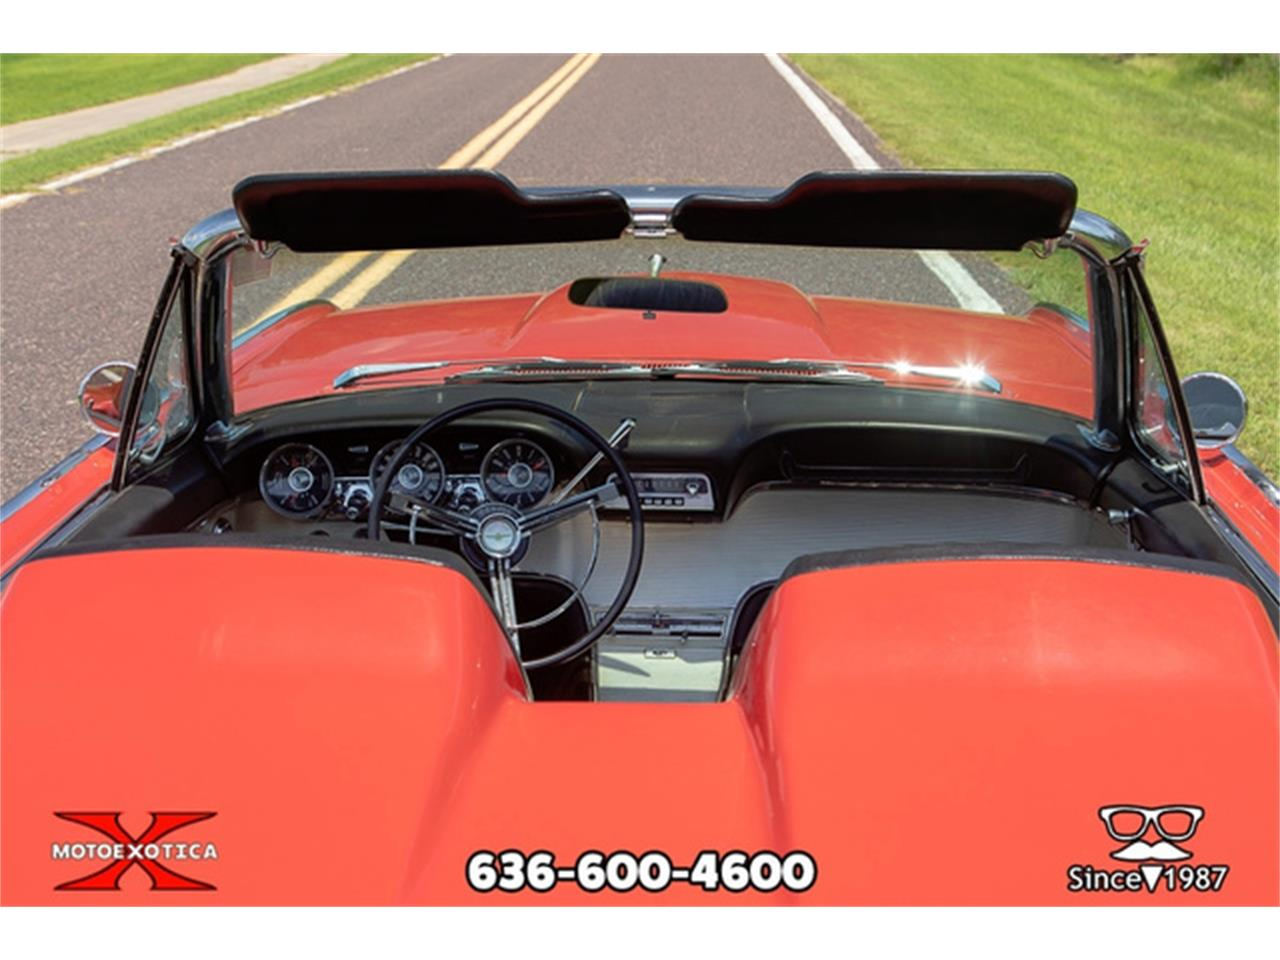 Large Picture of '62 Ford Thunderbird located in St. Louis Missouri - $27,500.00 - QXLJ